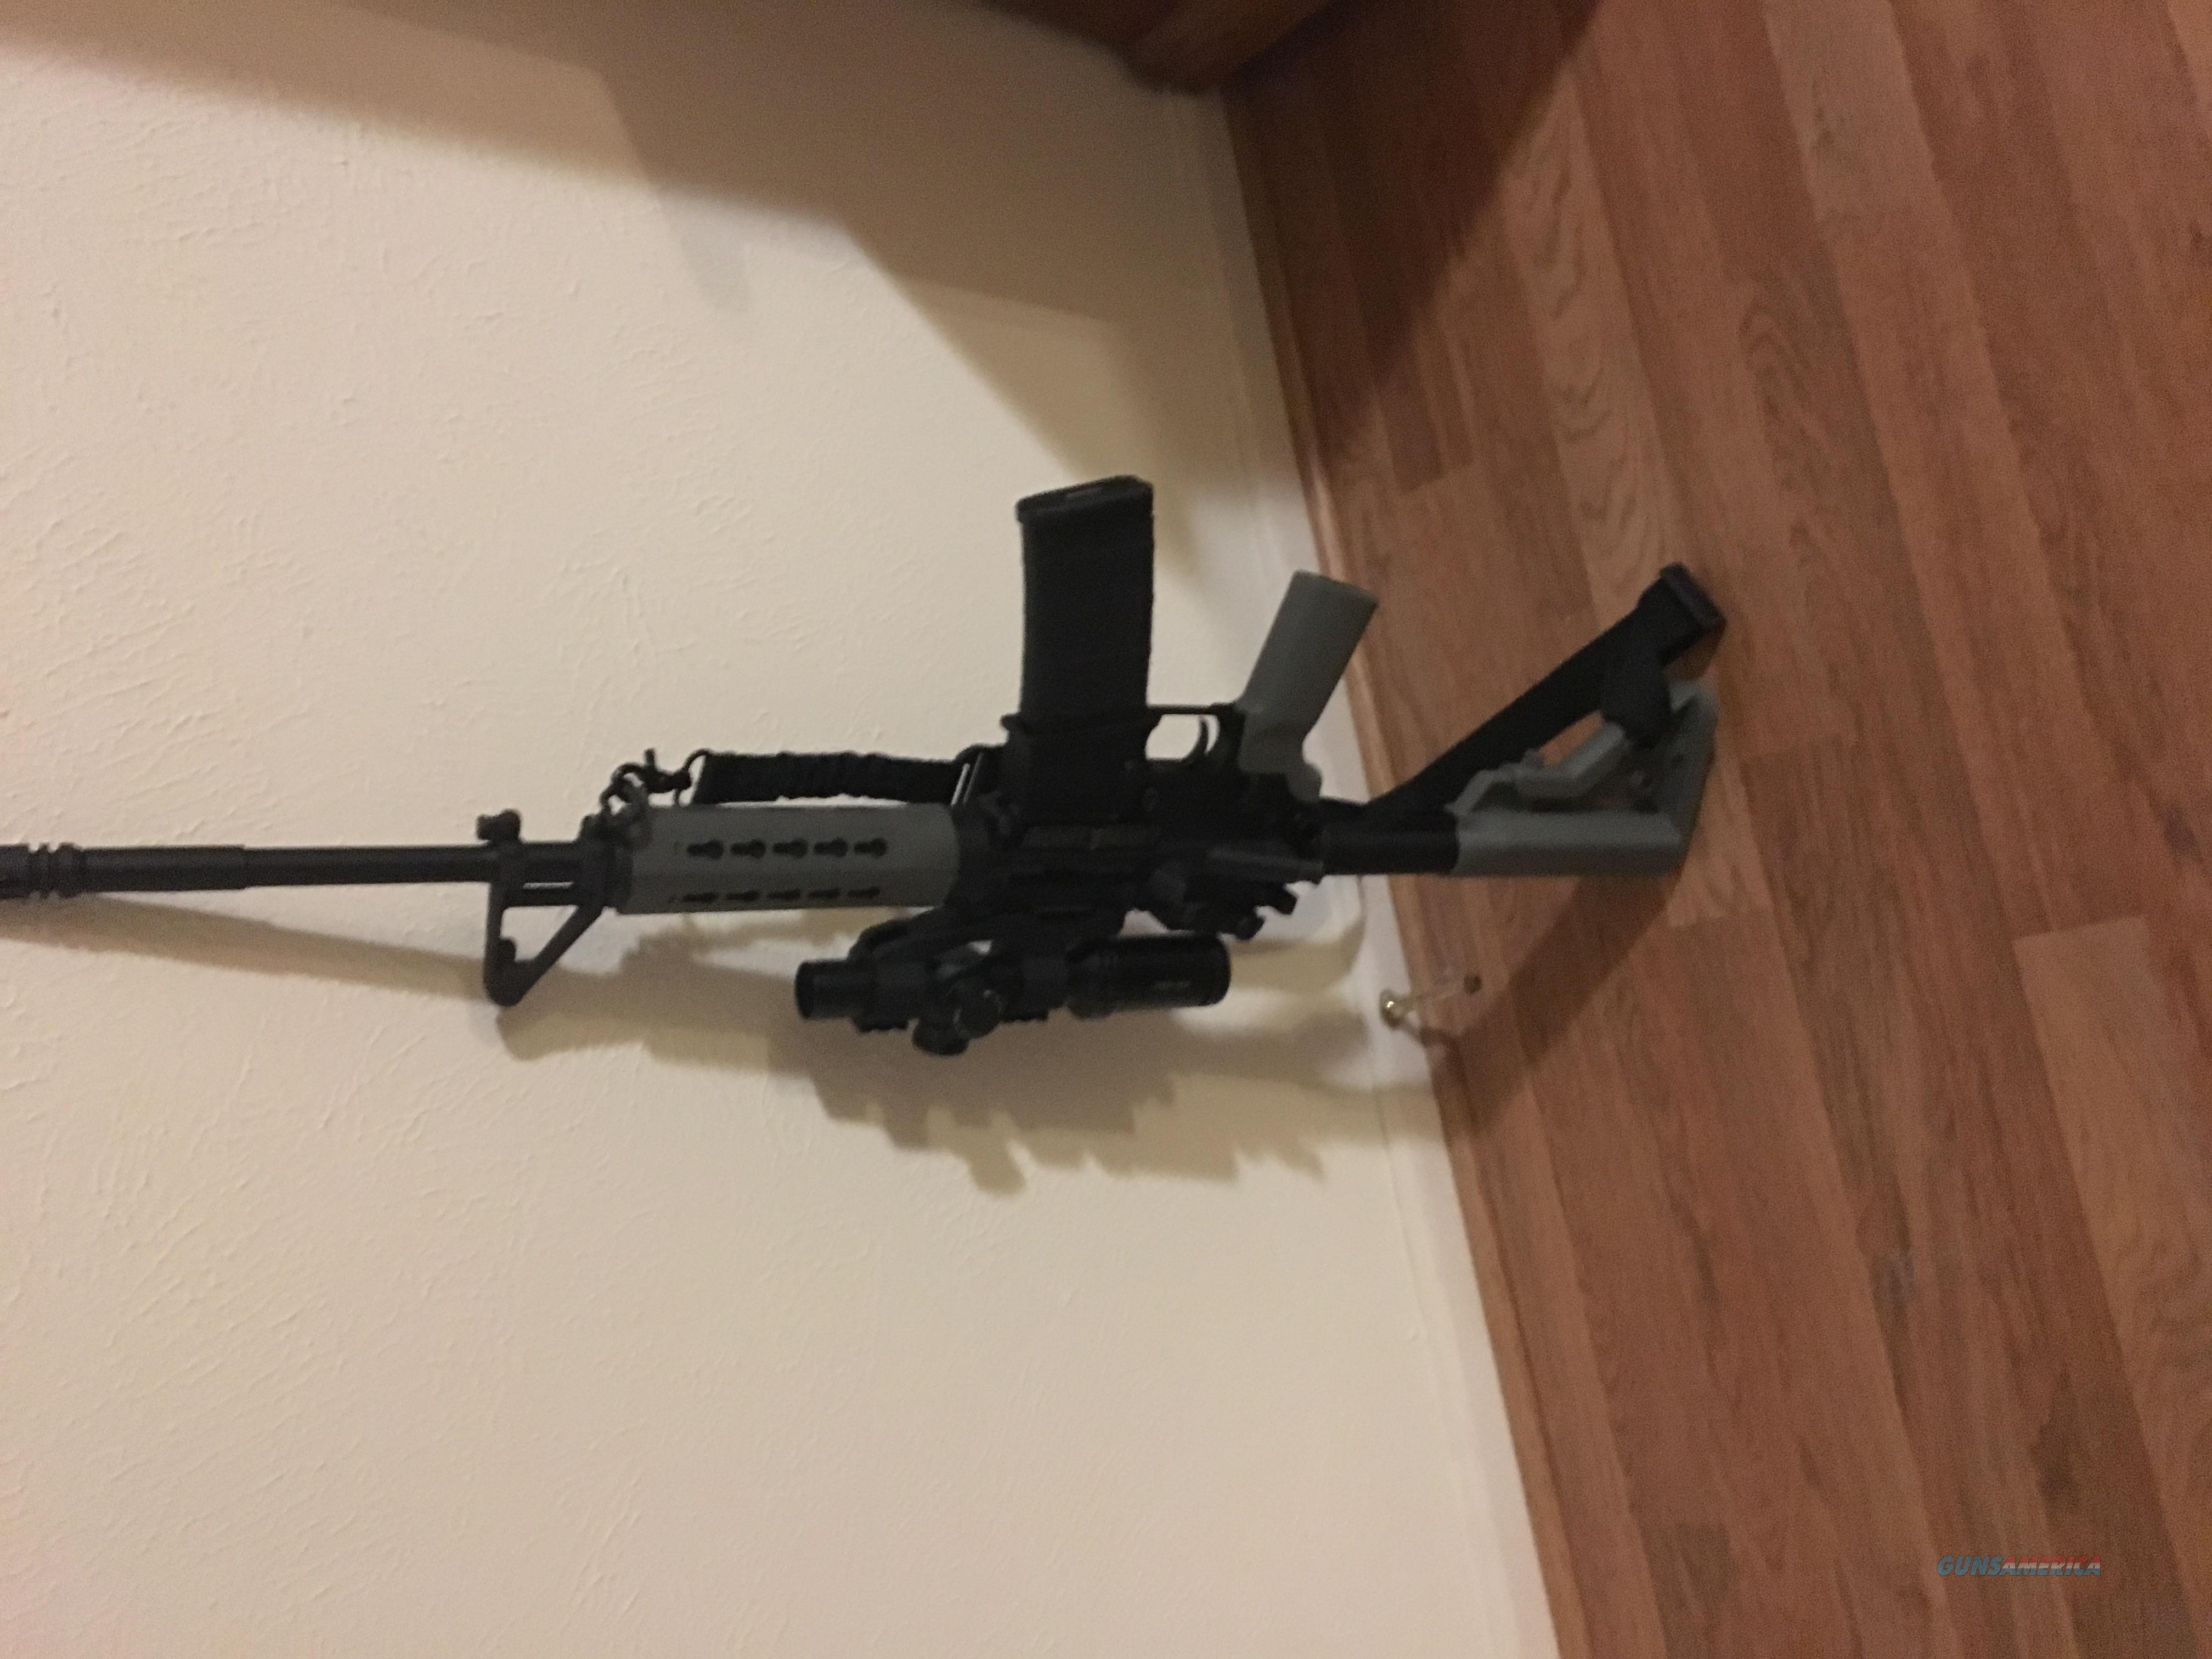 Sig sauer m400 with bushnell AR illuminated scope  Guns > Rifles > Sig - Sauer/Sigarms Rifles